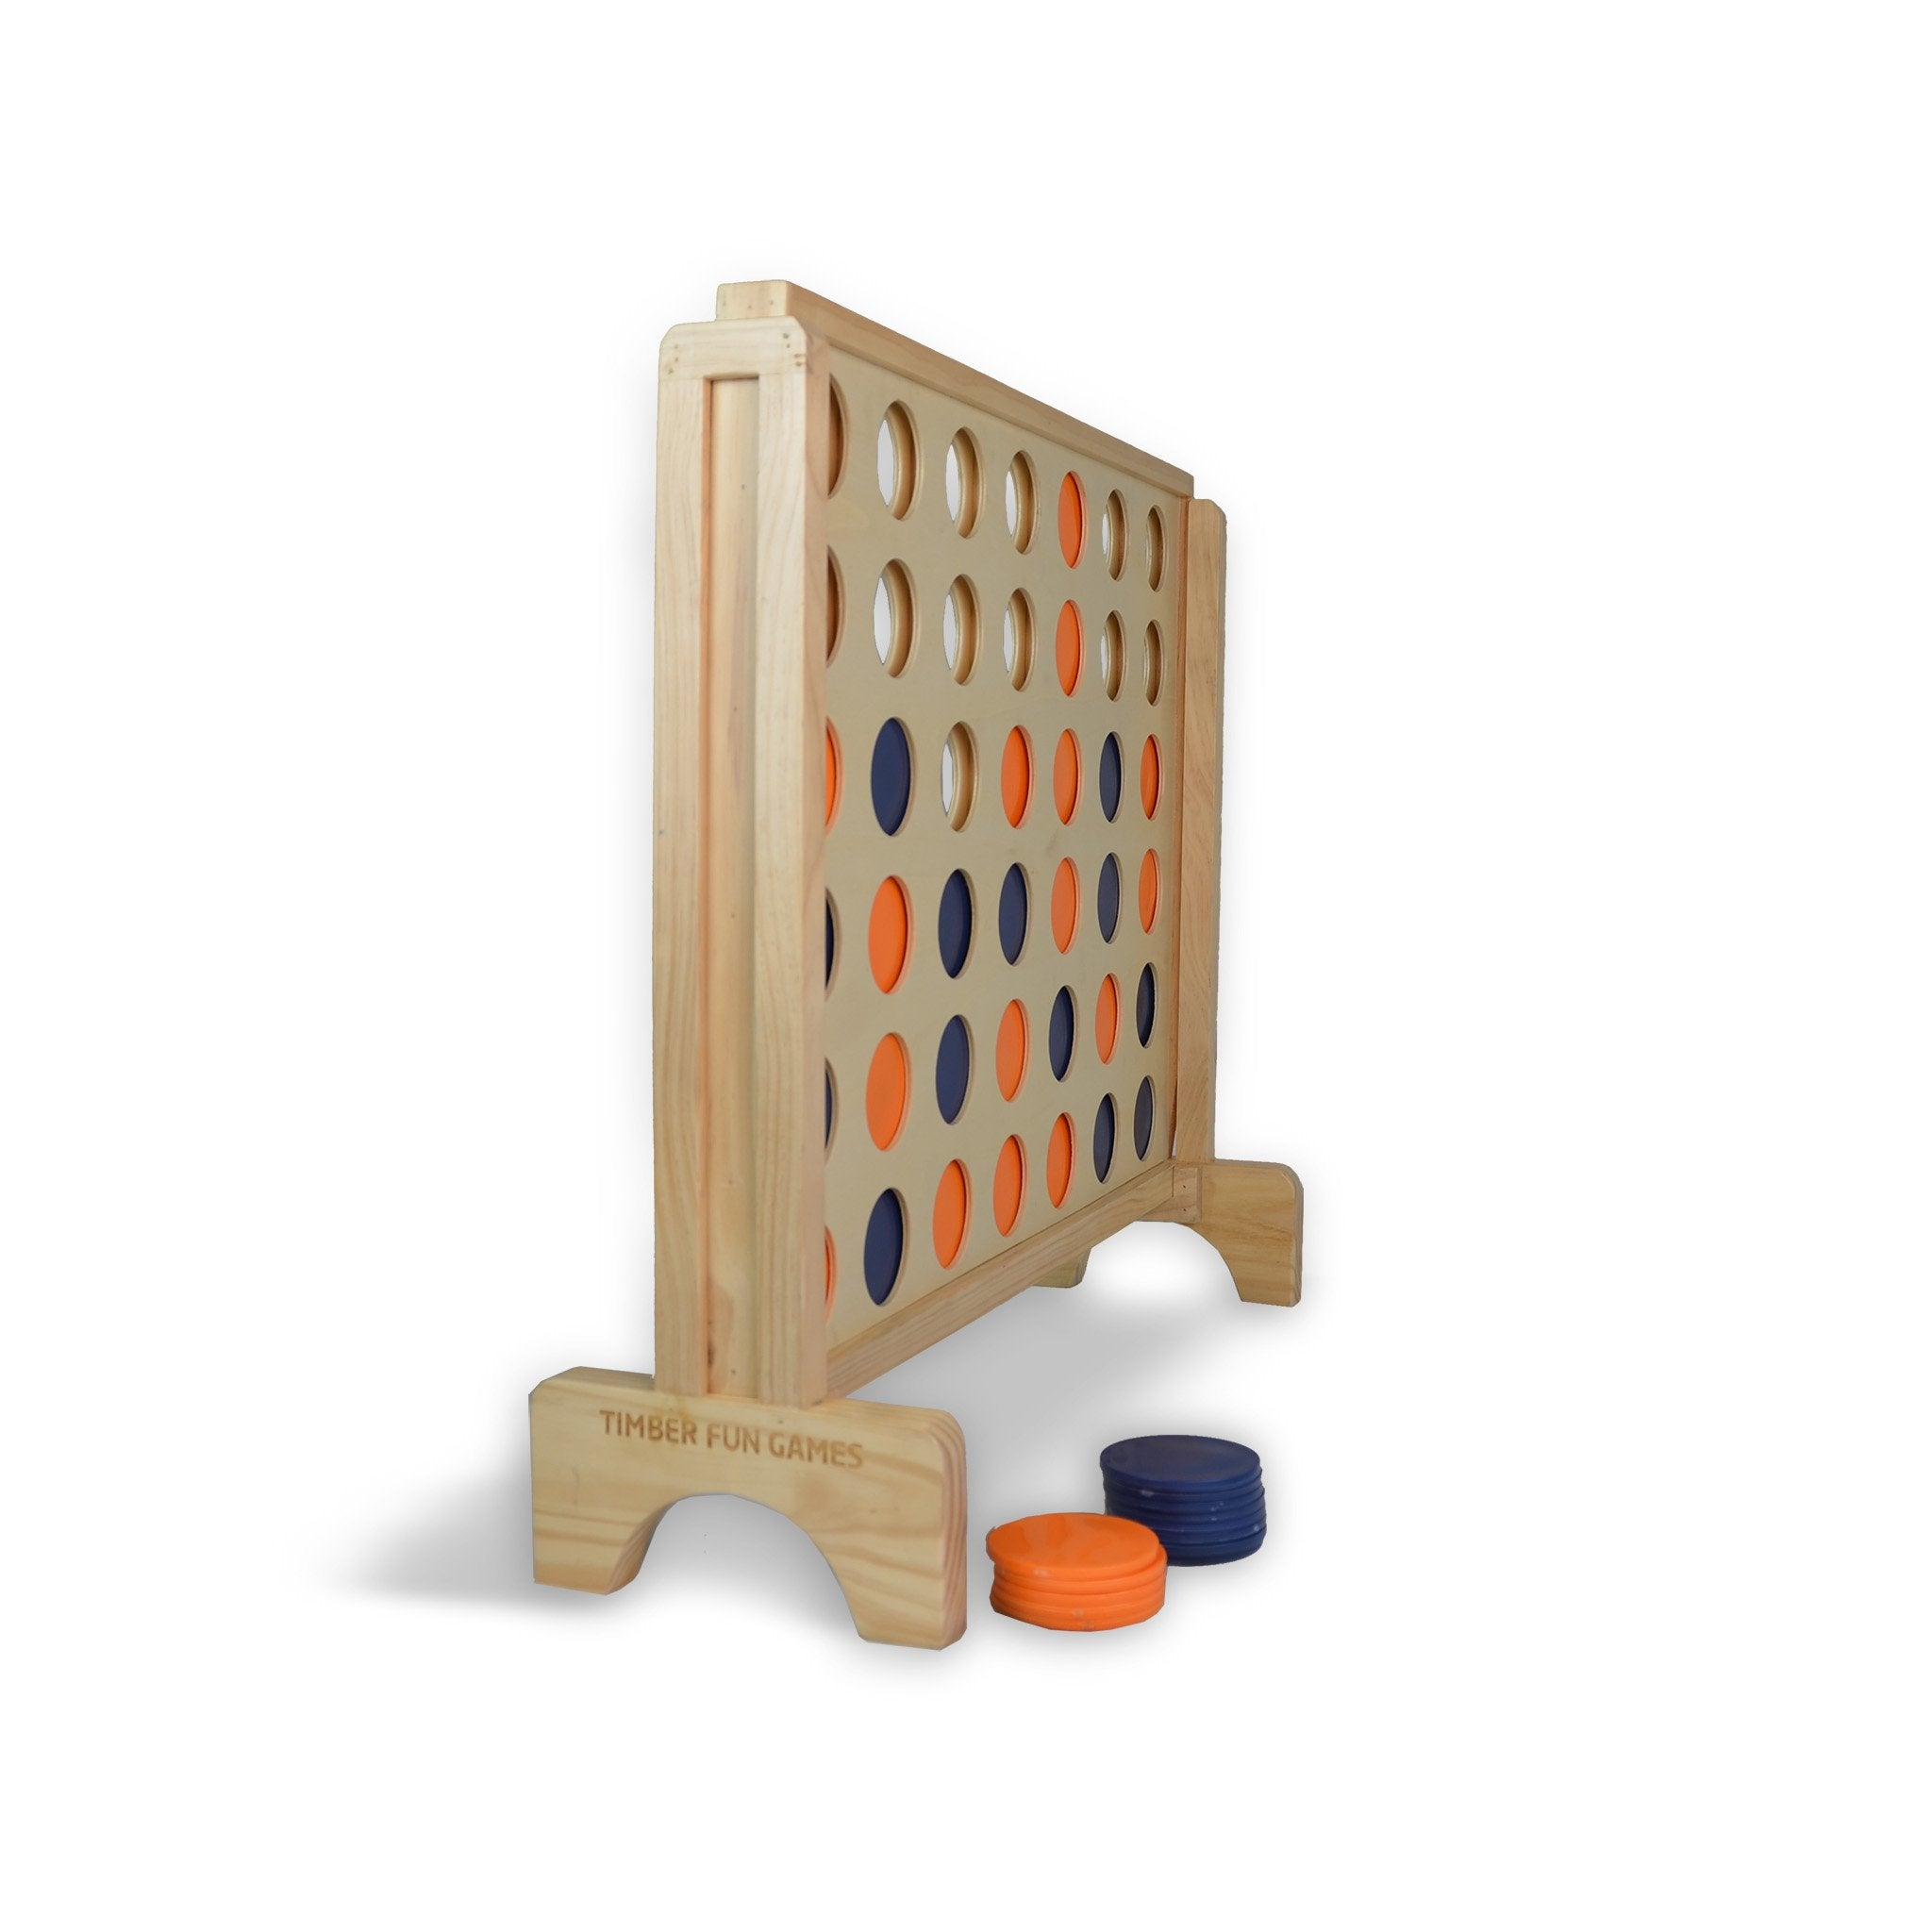 Giant 4 in a Row Connect 4 Wooden Garden Lawn Game